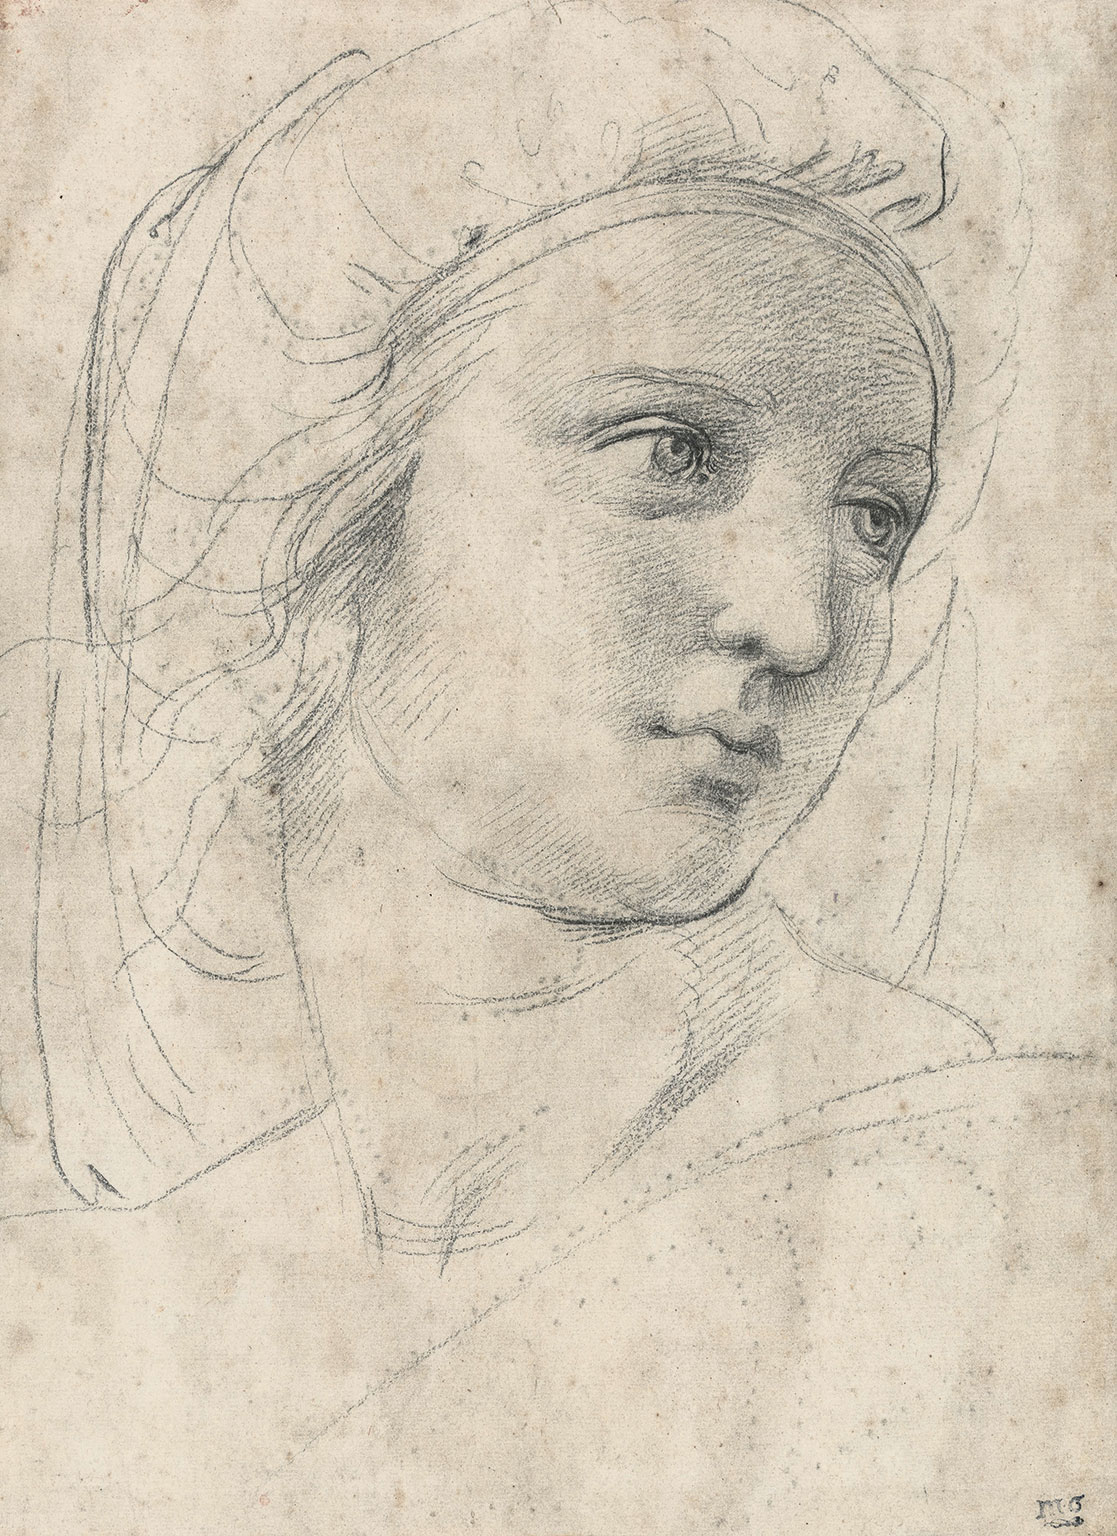 Drawn expression Drawings The at Raphael Museum